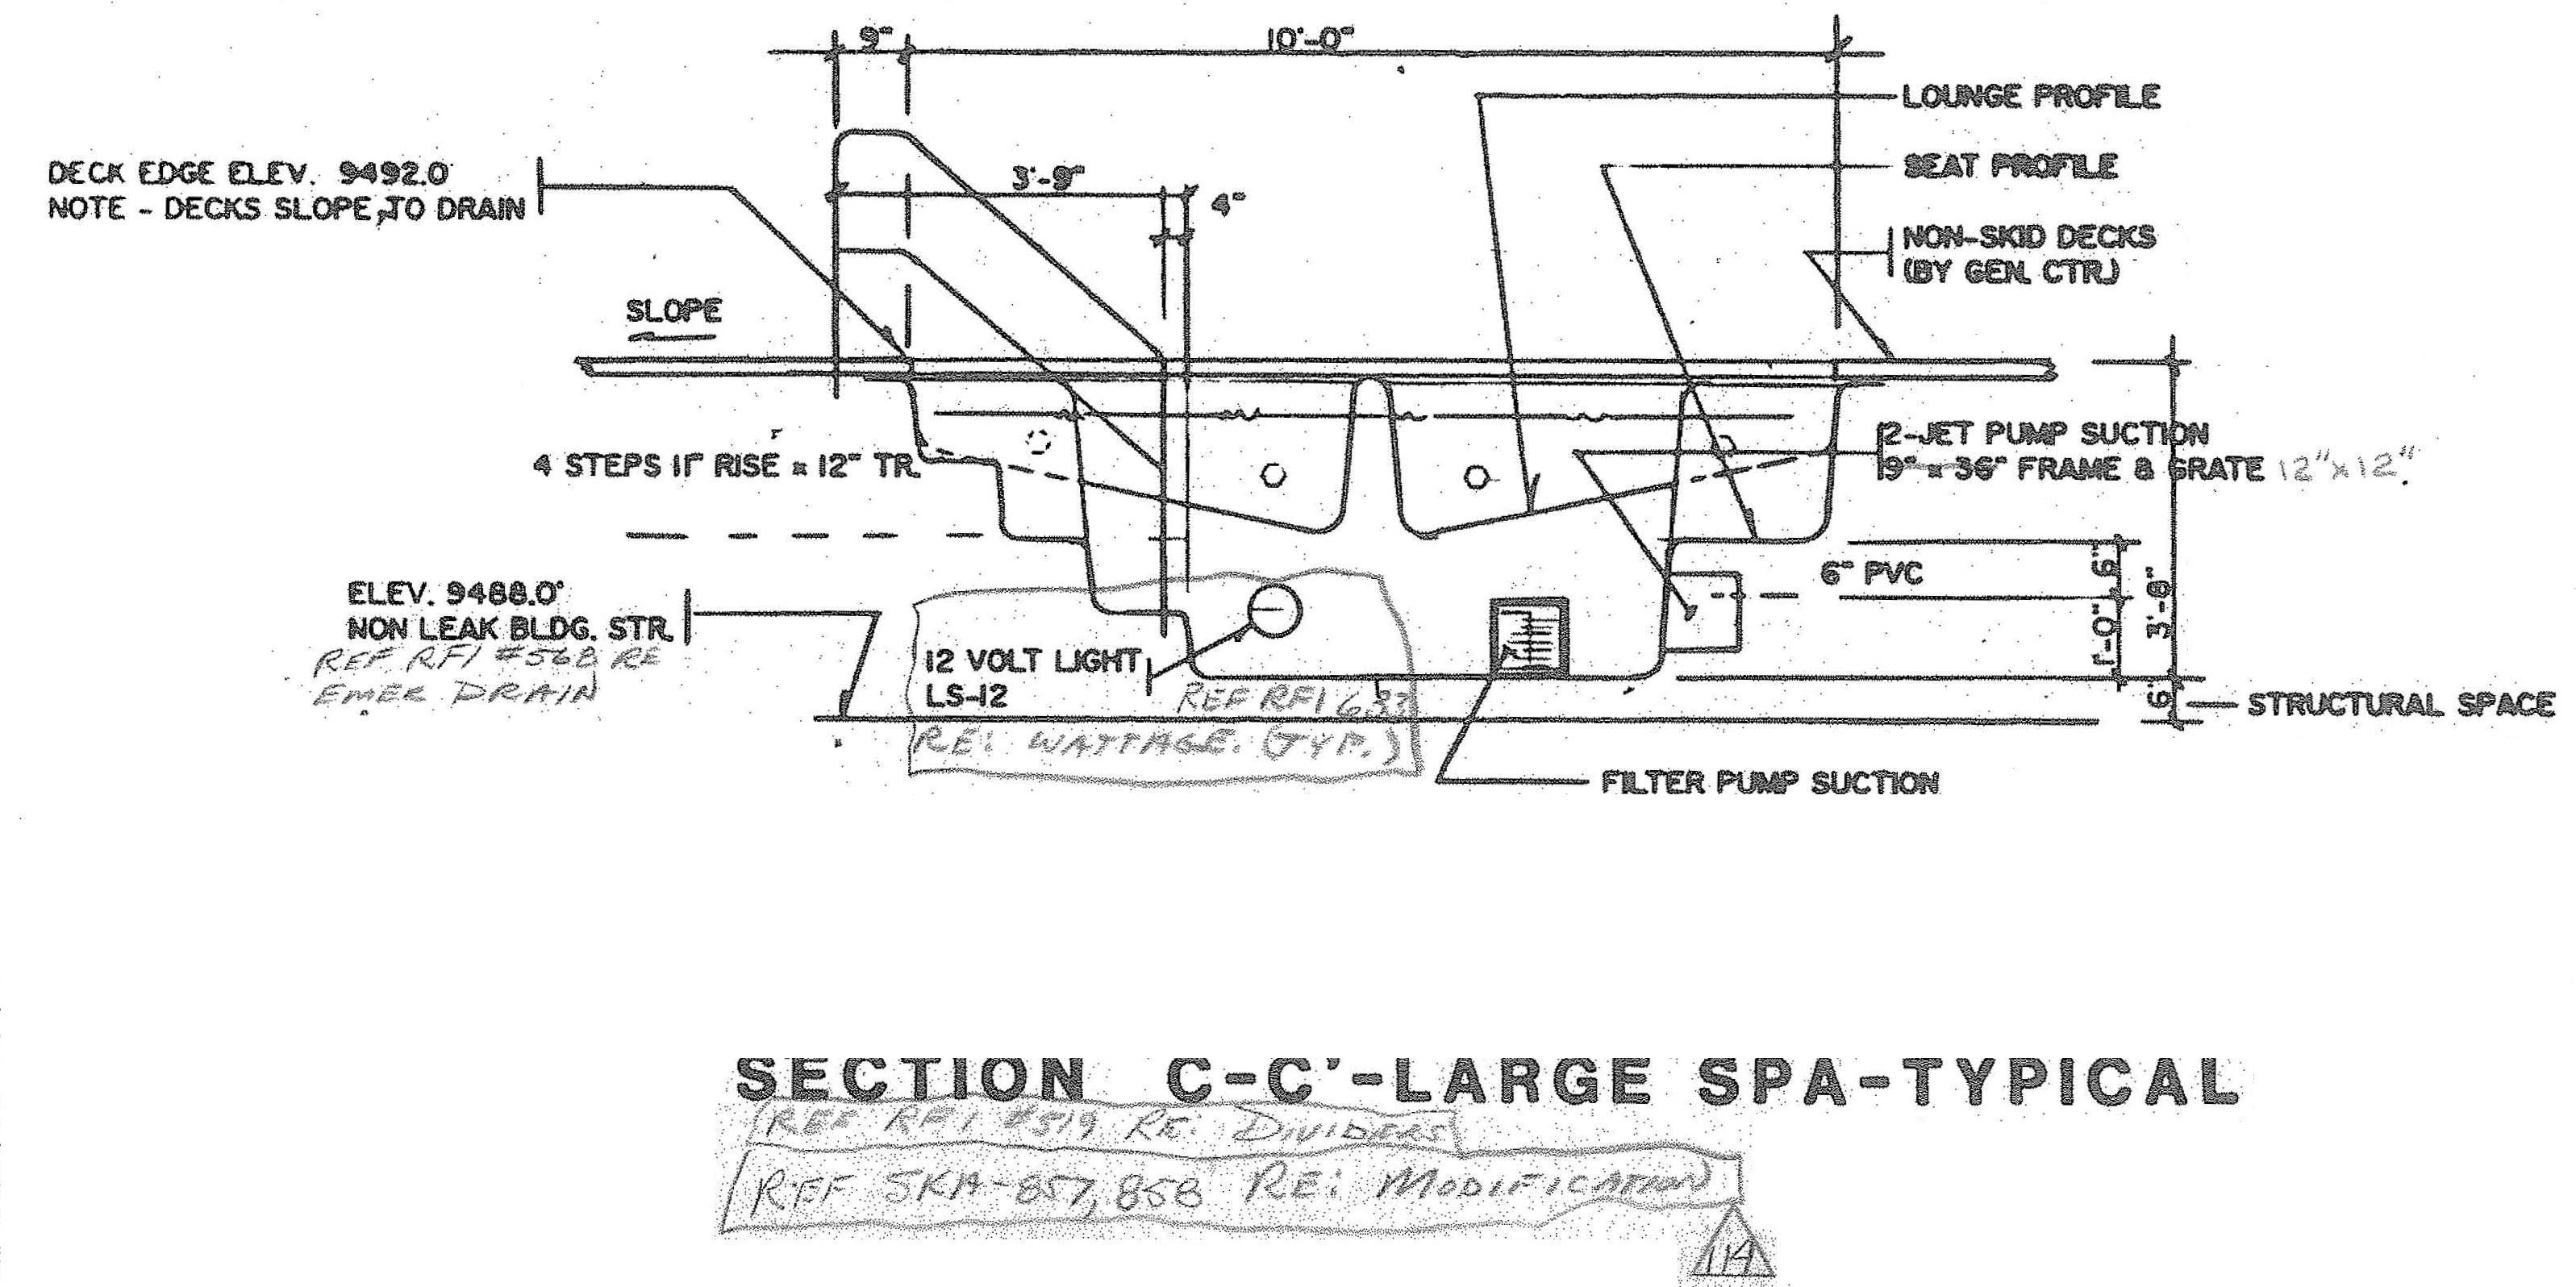 ELEVATION SECTION C-C KIVA SPA-004